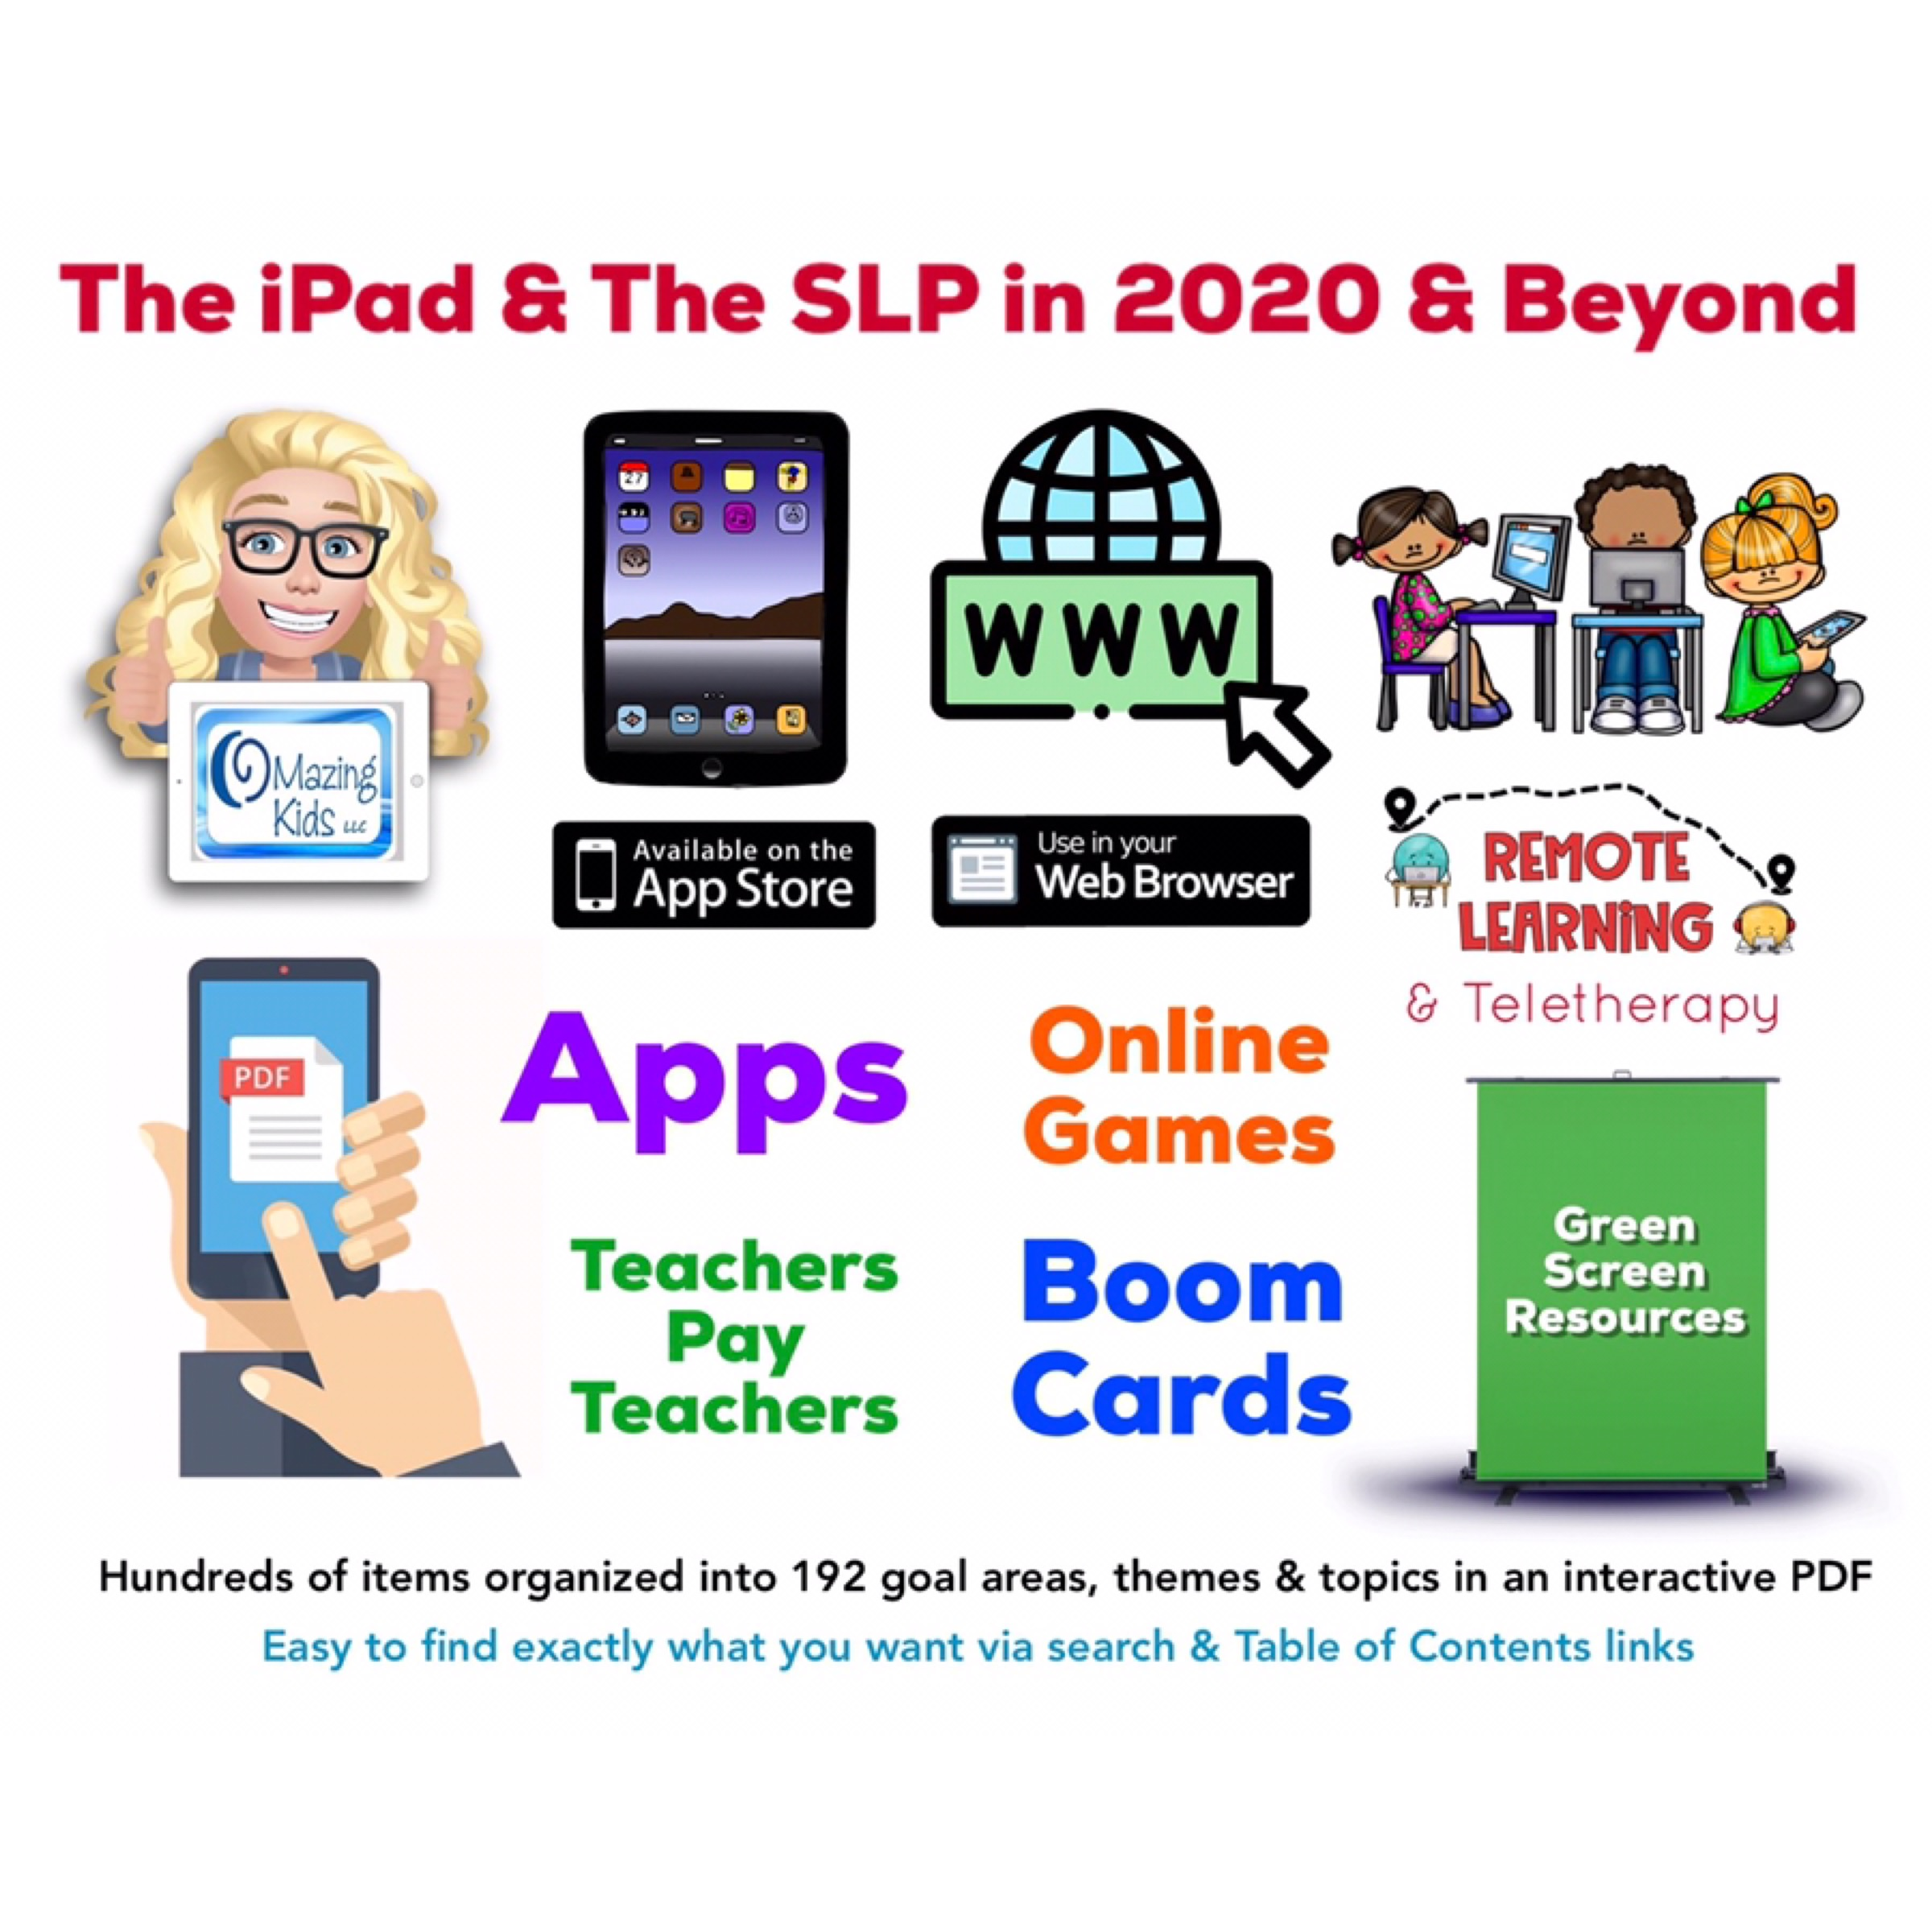 The iPad and the SLP in 2020 and Beyond - a new free interactive resource from OMazing Kids